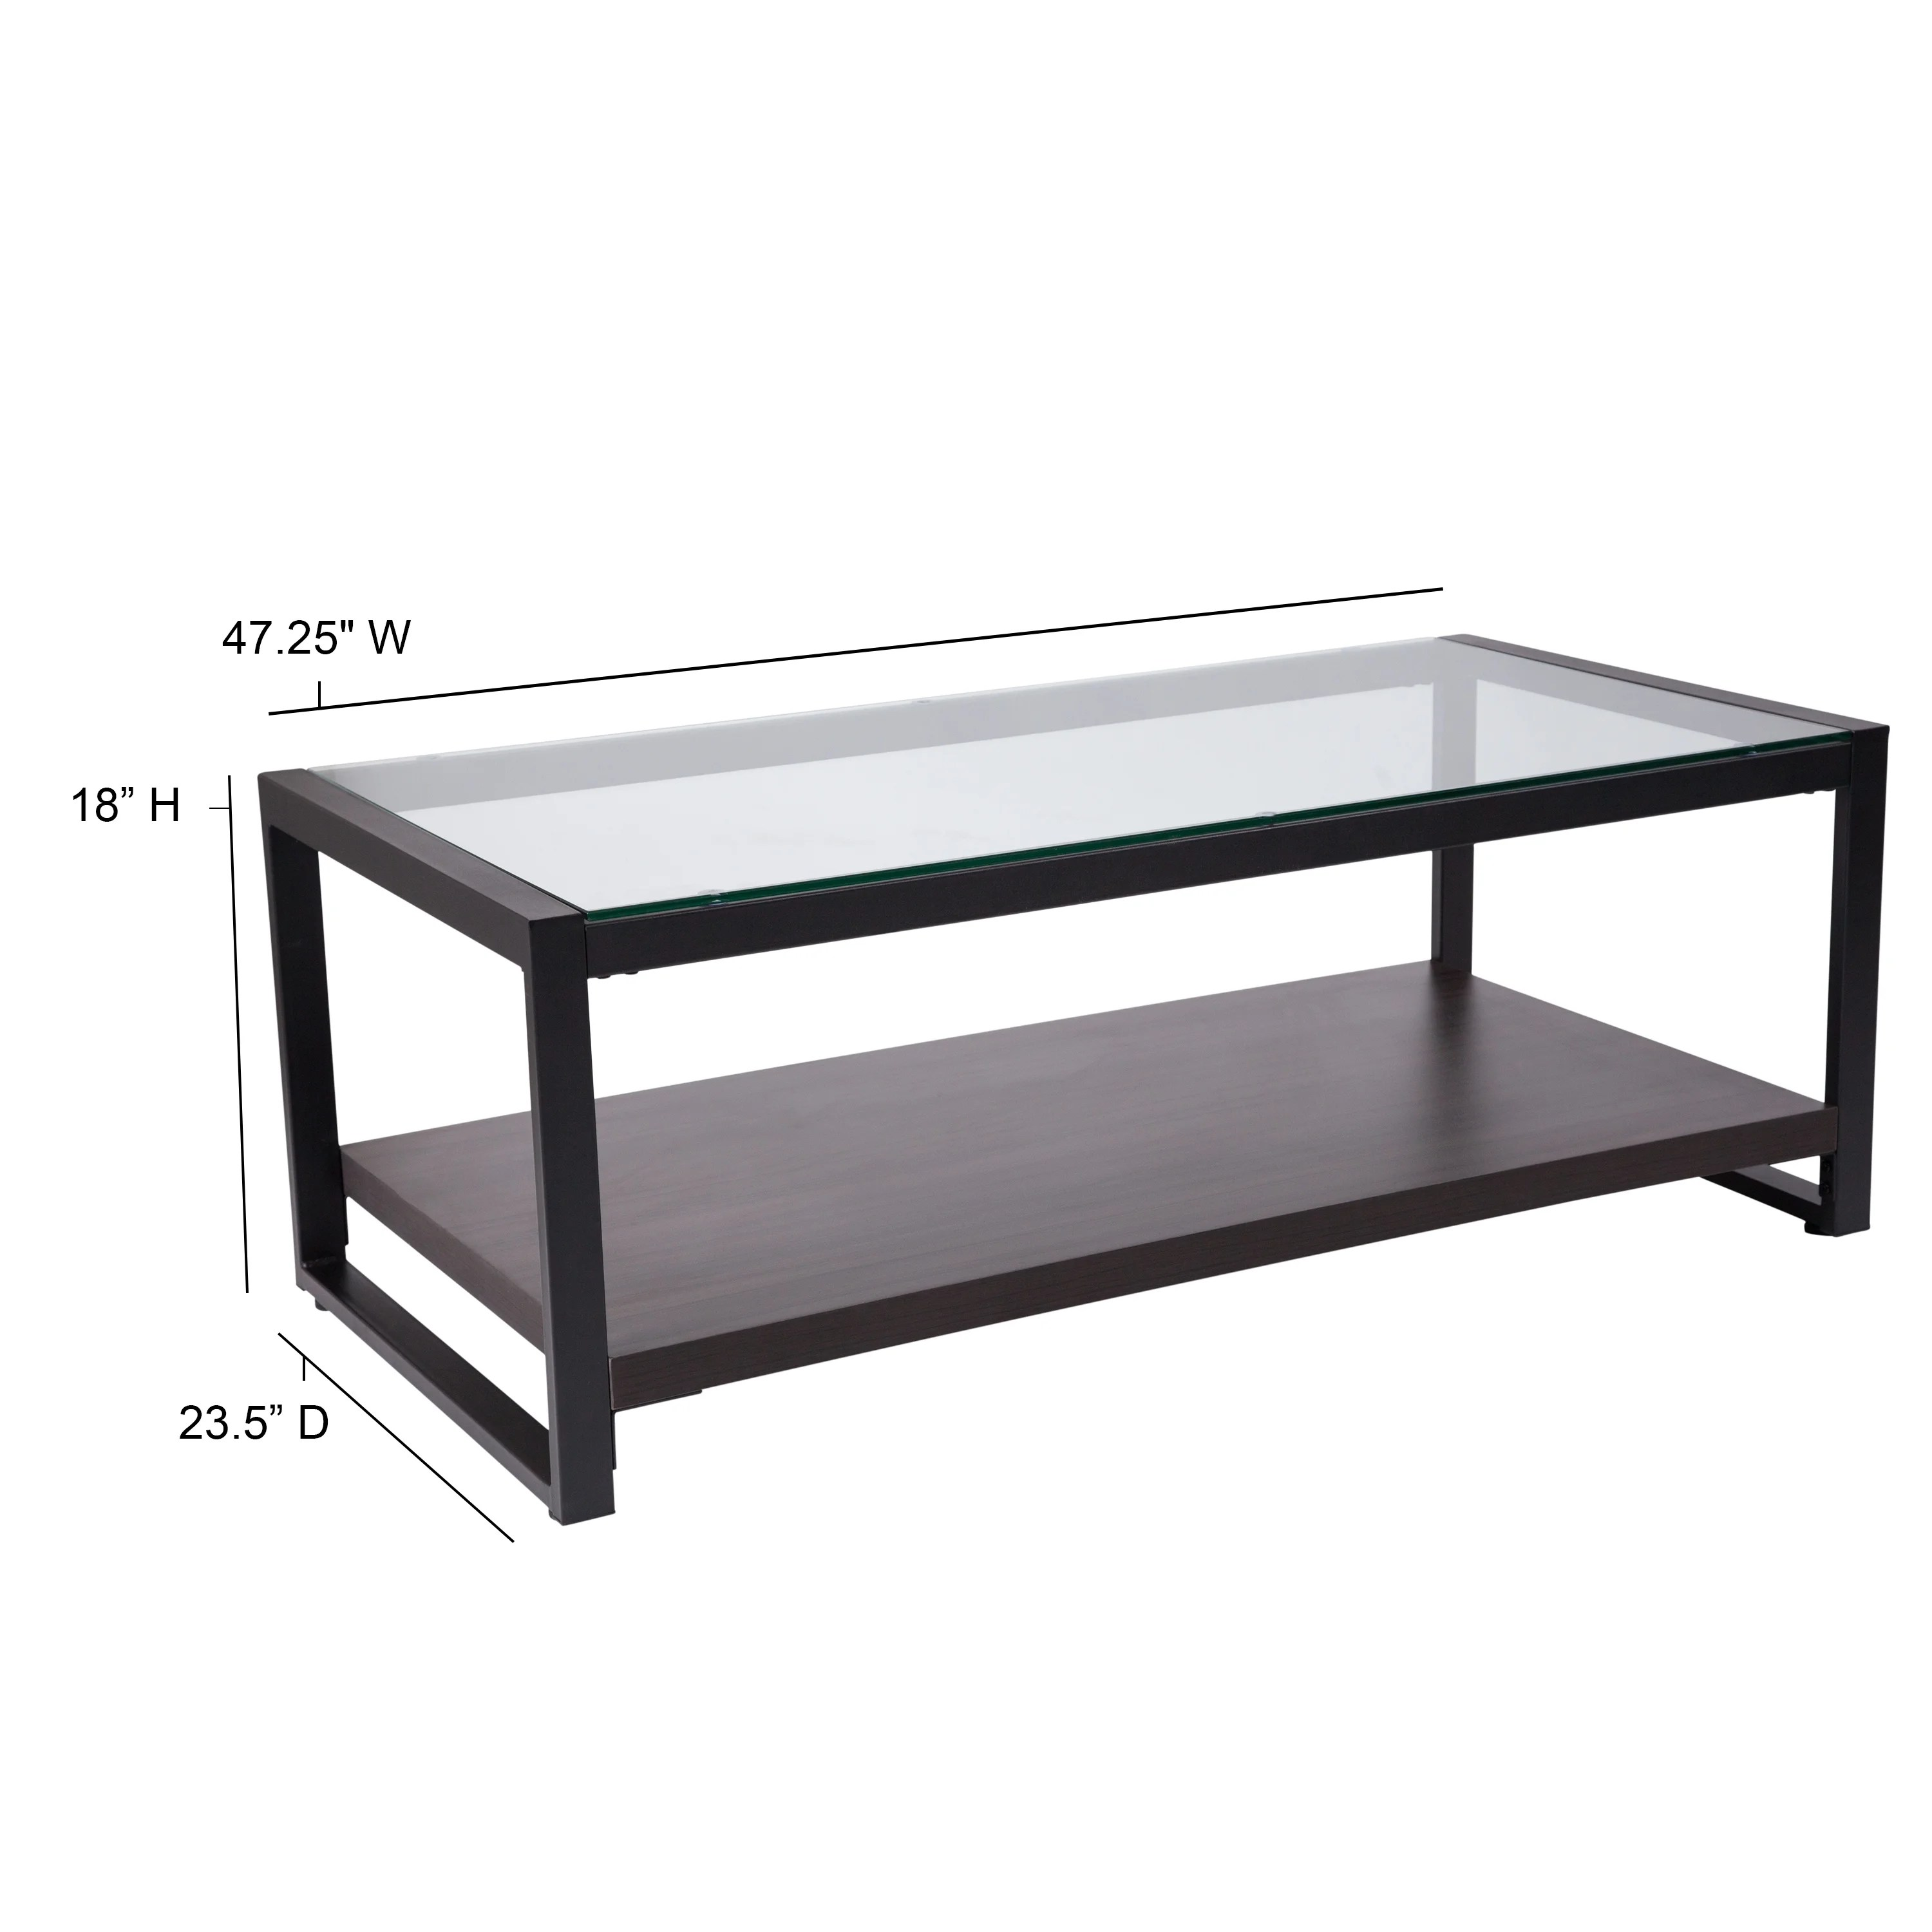 Glass Coffee Table With Wood Grain Raised Shelf And Metal Frame Overstock 27976198